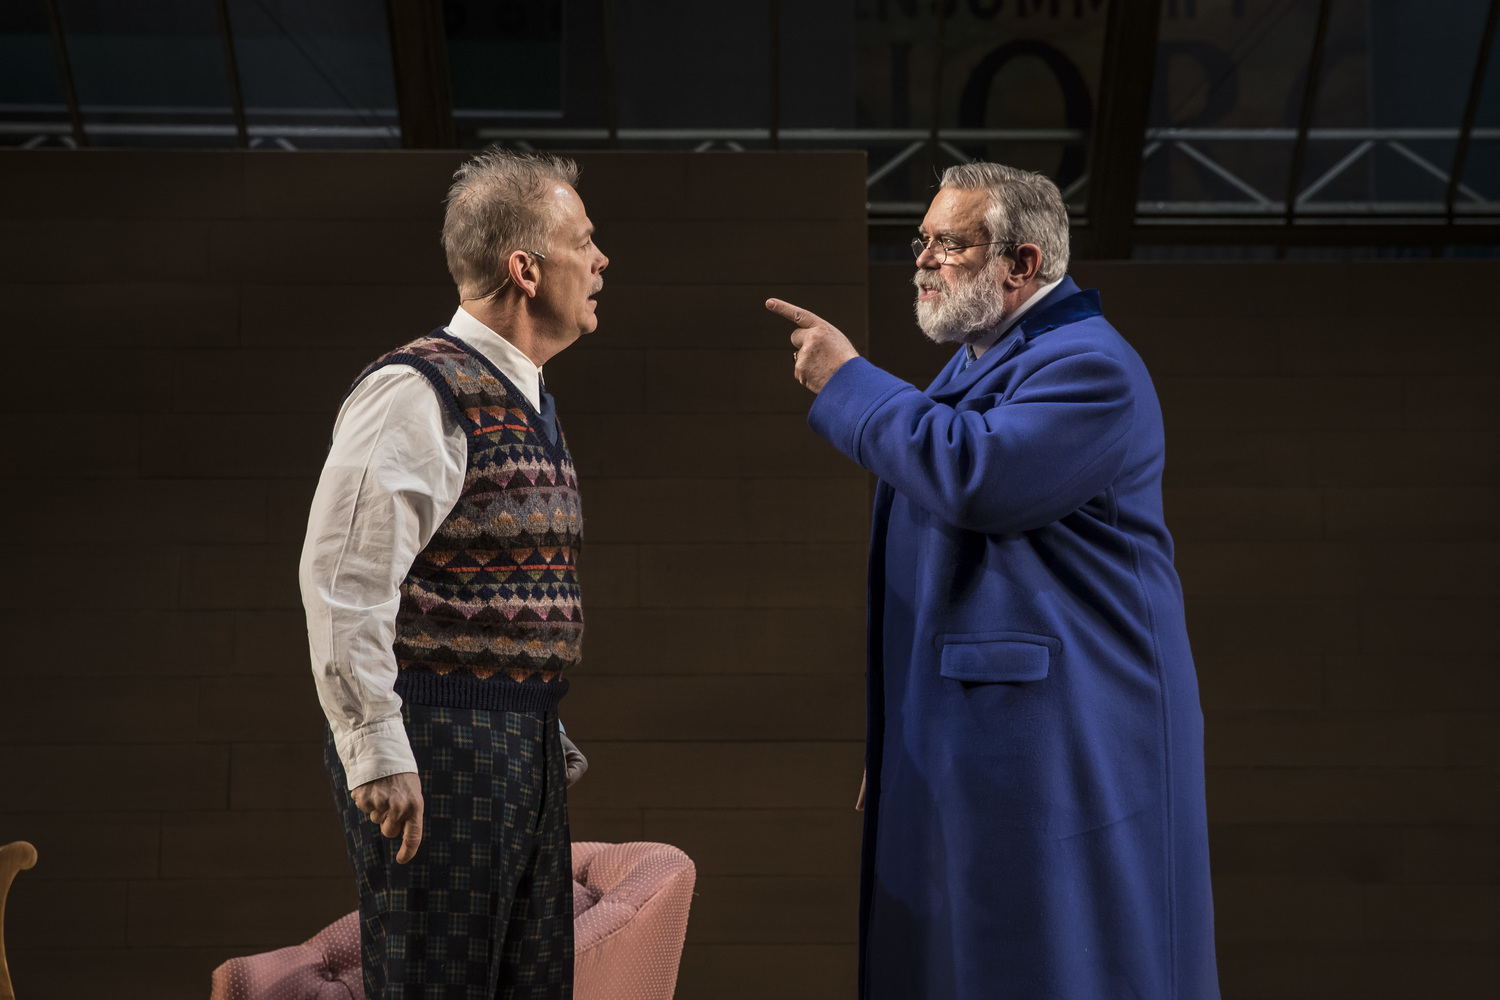 BWW Review: AN ENEMY OF THE PEOPLE at Goodman Theatre